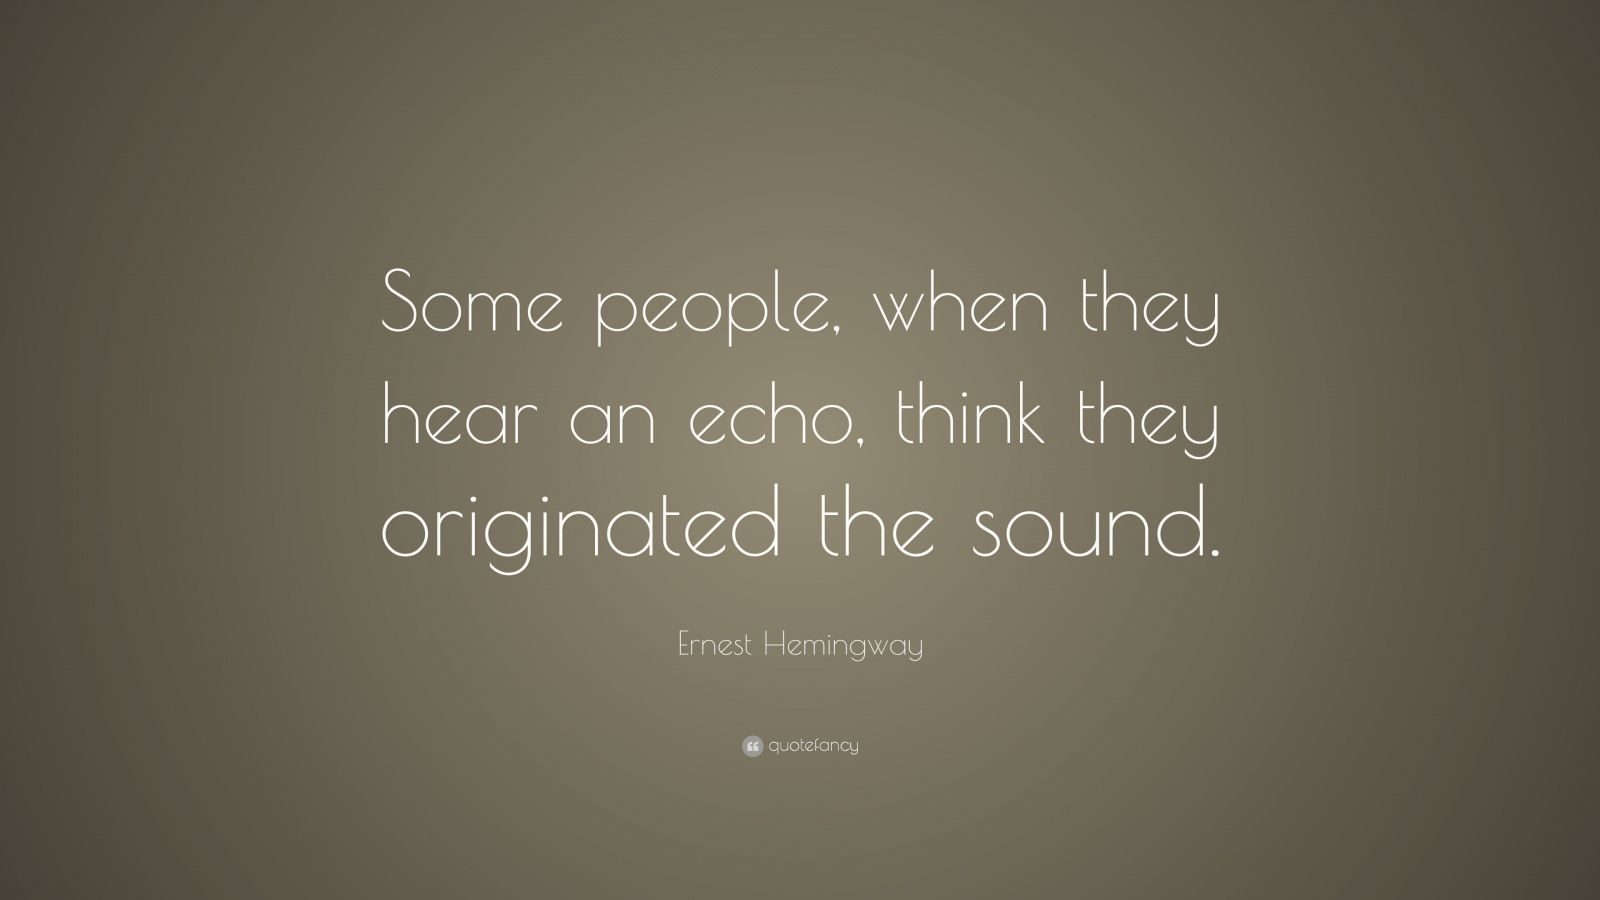 """Ernest Hemingway Quote: """"Some people, when they hear an echo, think they originated the sound."""""""